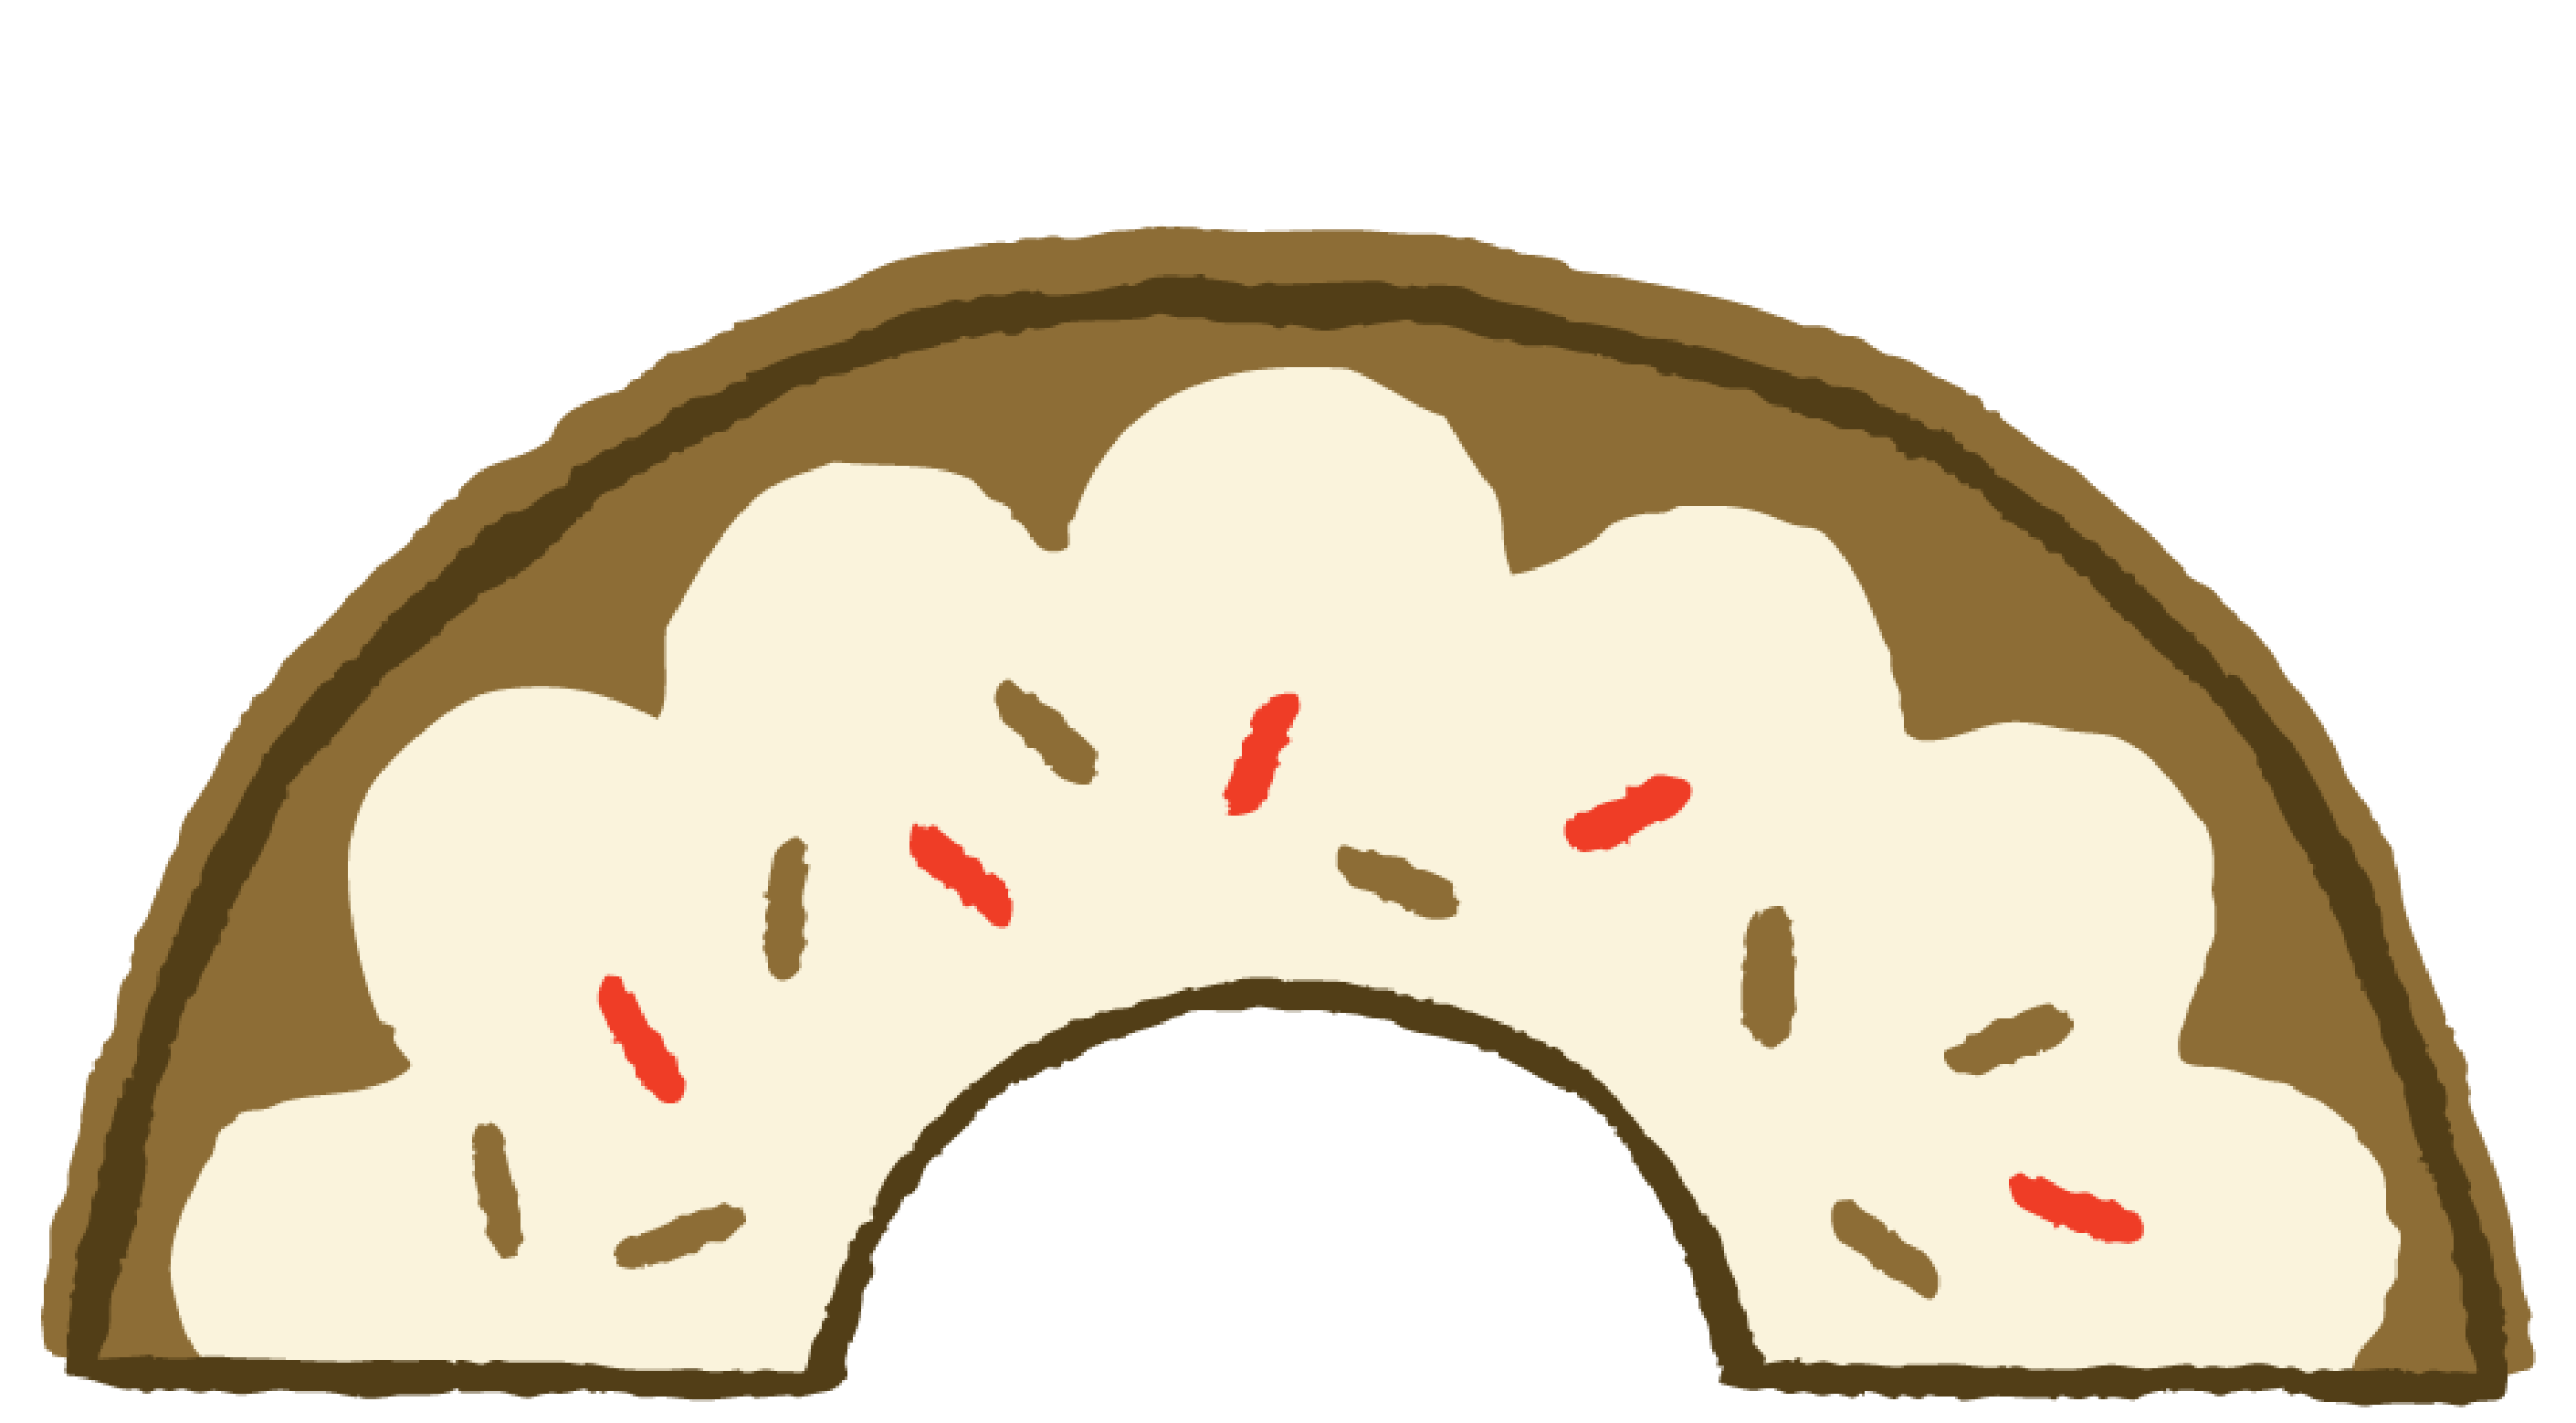 Menu friend first choose. Strawberries clipart frosted donut